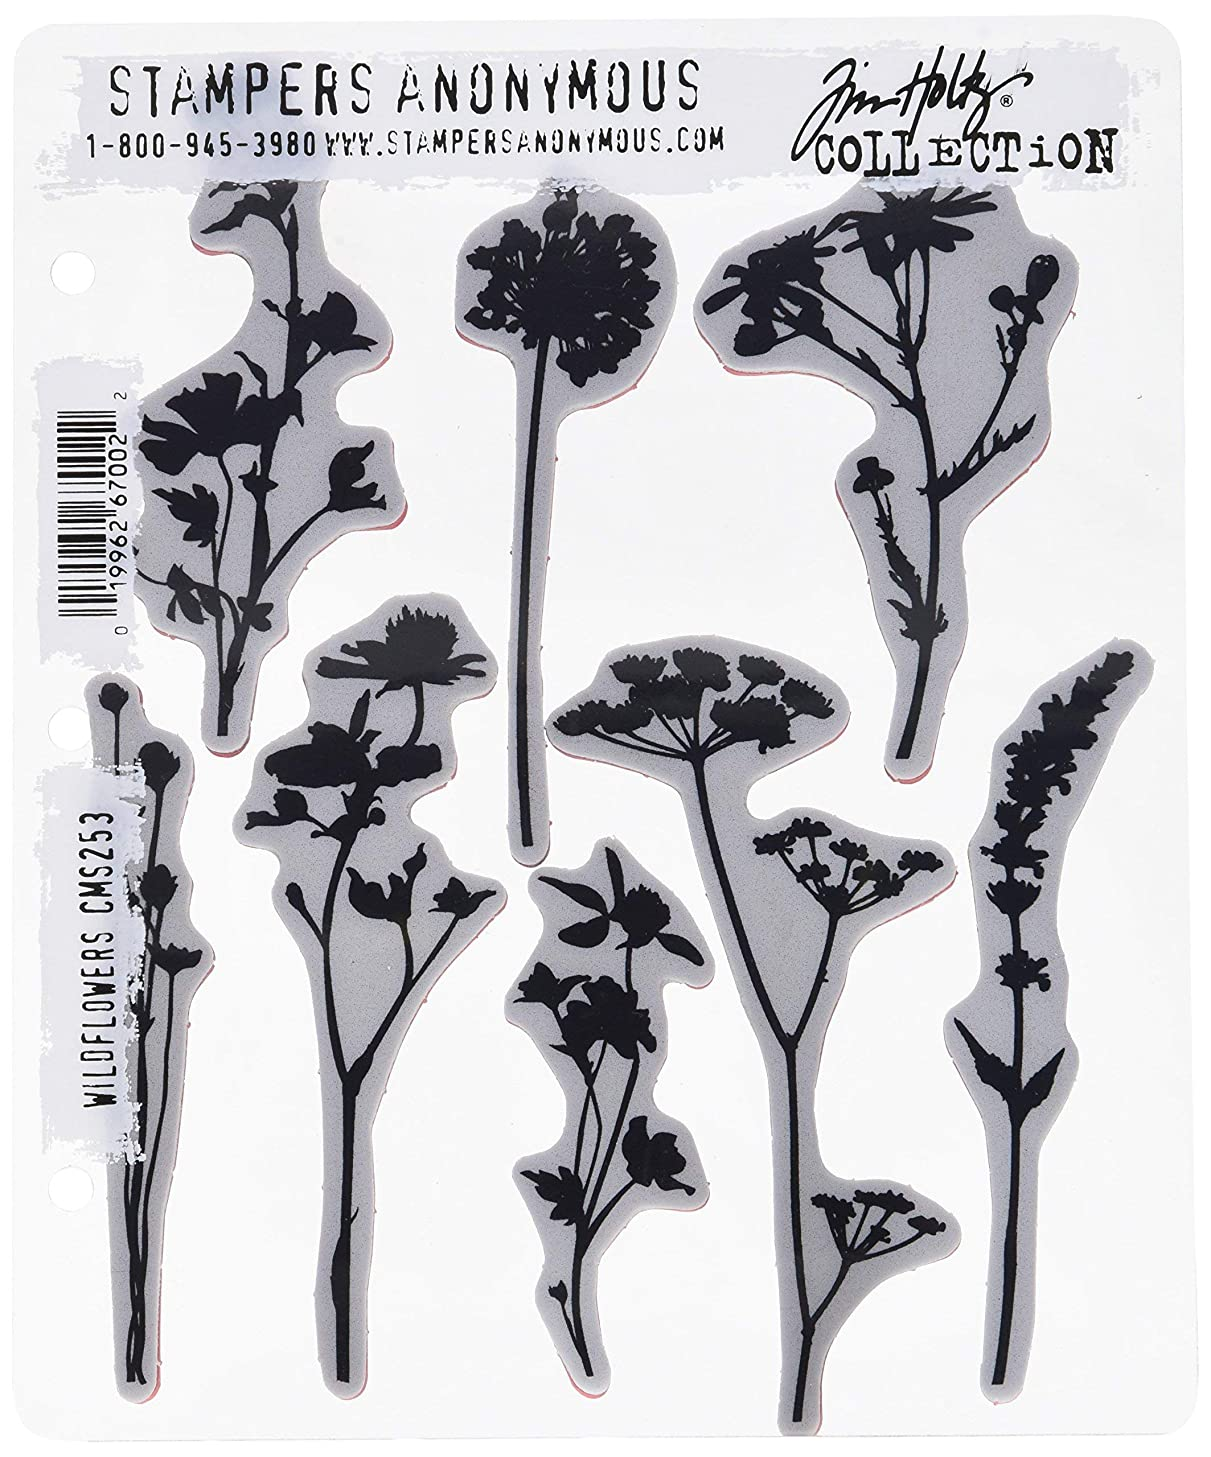 Stampers Anonymous CMS253 Wildflowers Tim Holtz Cling Stamps, 7